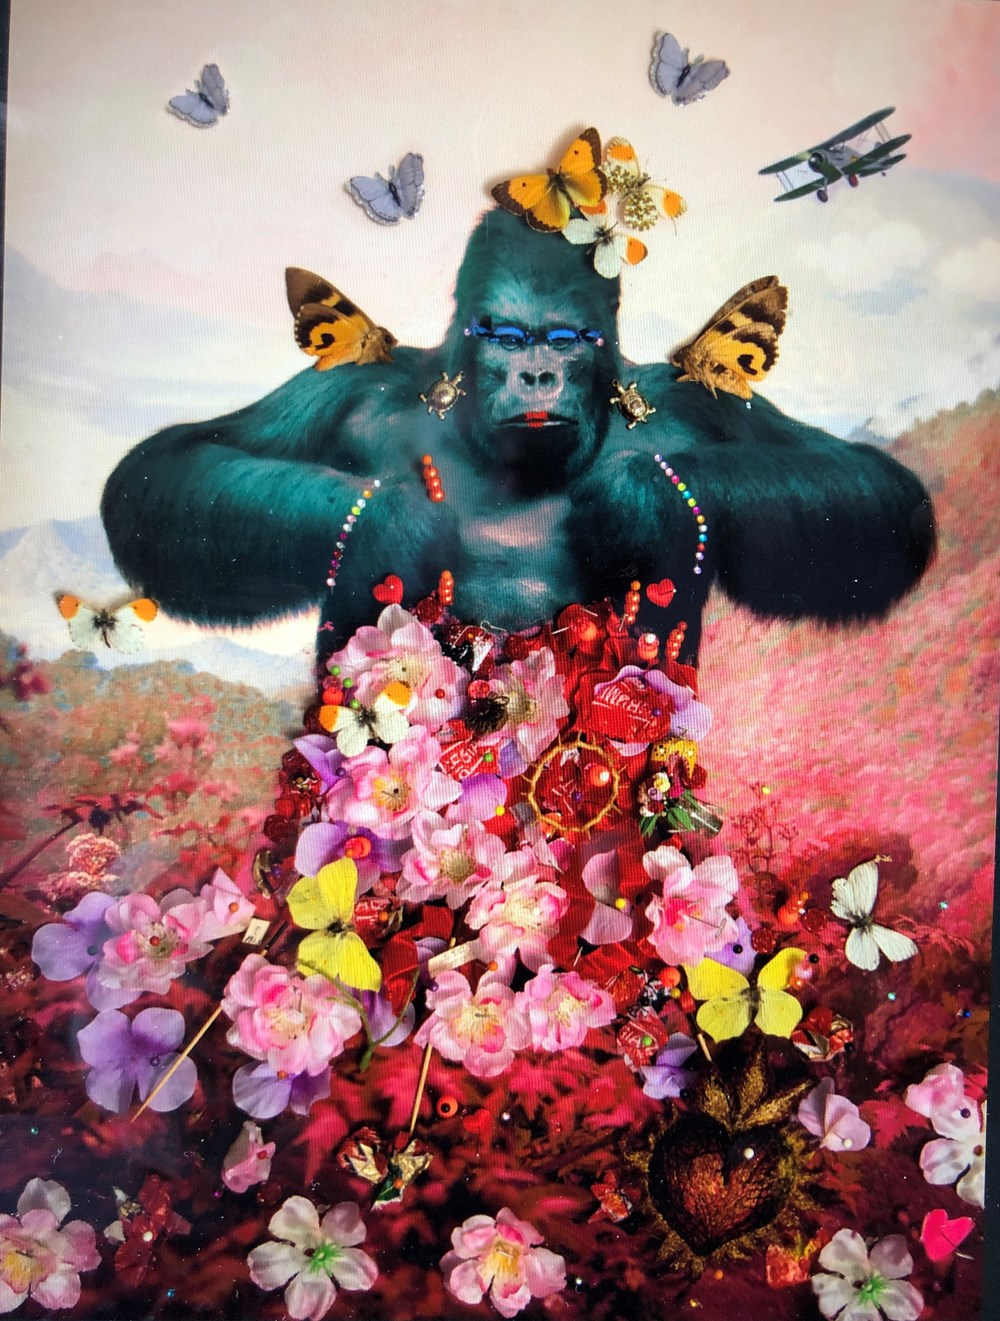 Terrence Higgins Trust, The Timed Auction 2021 - Lot 4, B-Brown & Scheinmann, Adored & Adorned: Grayson the Gorilla